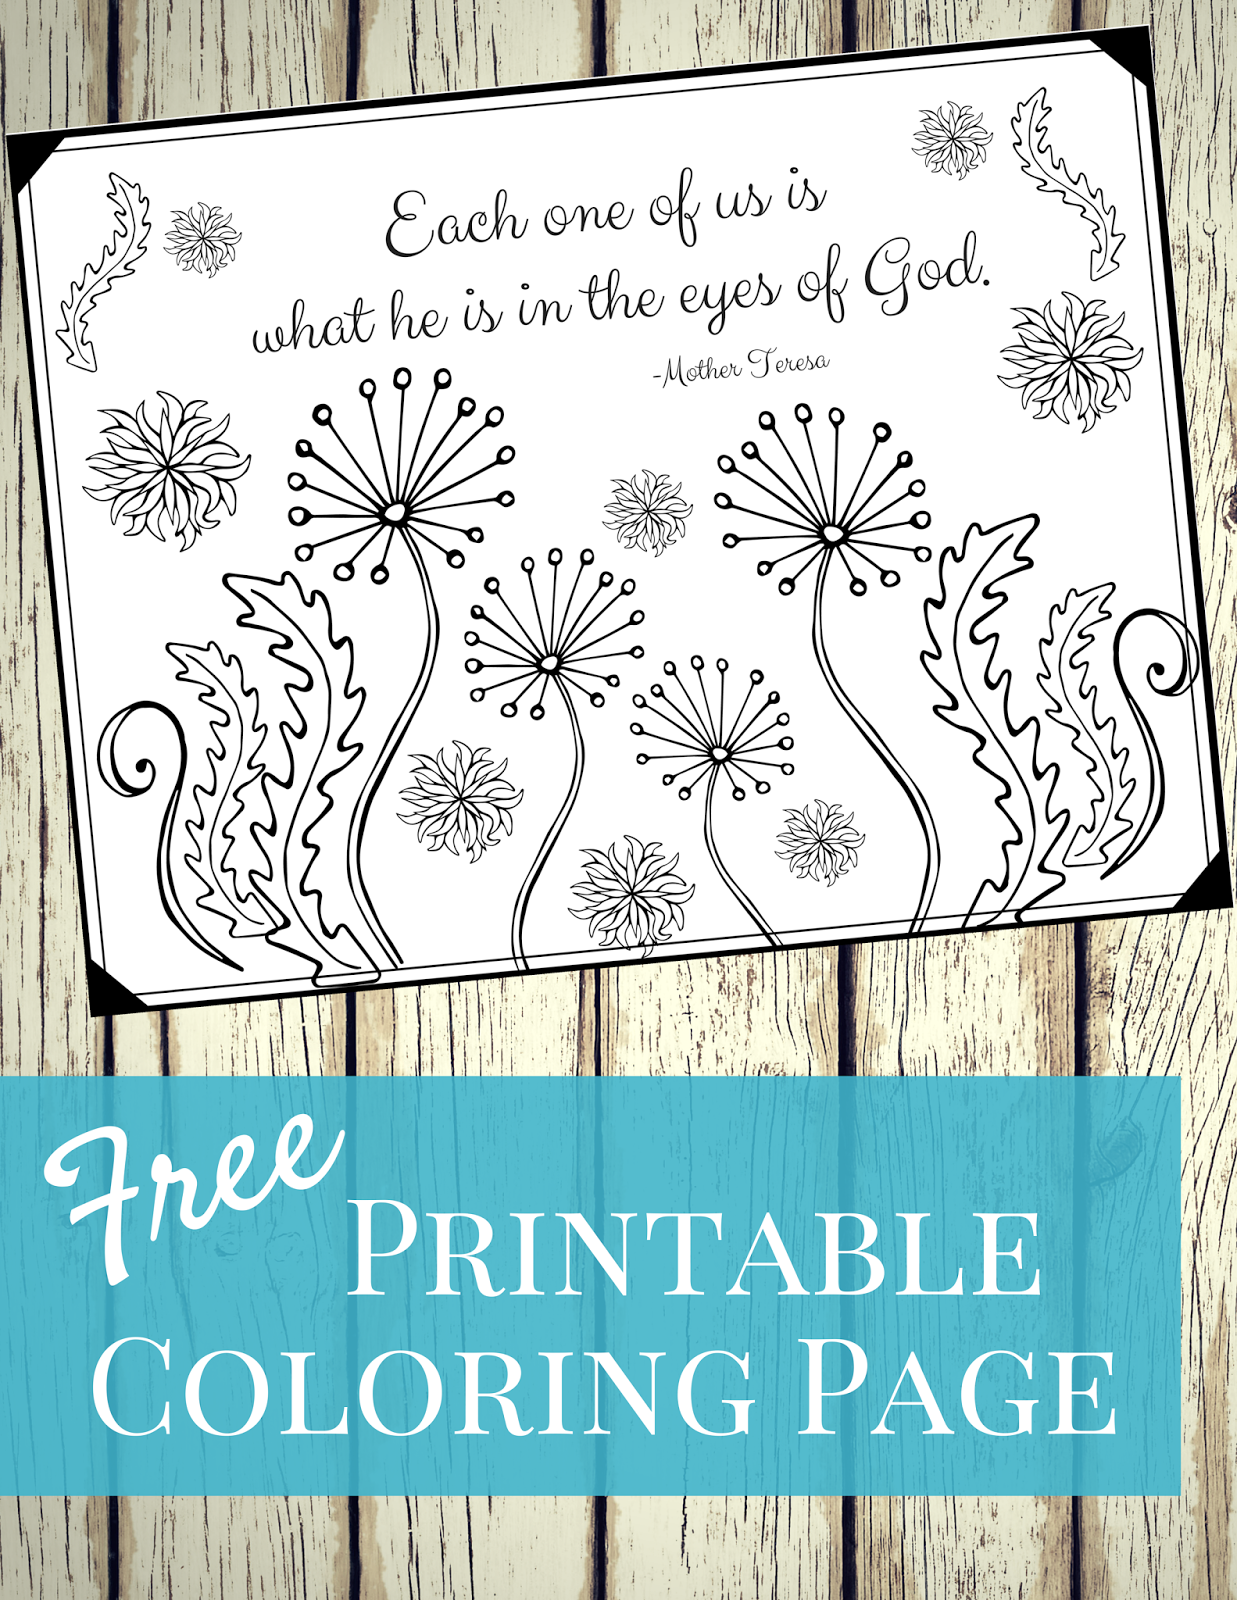 get this free coloring page with a quote from mother teresa download the pdf file here